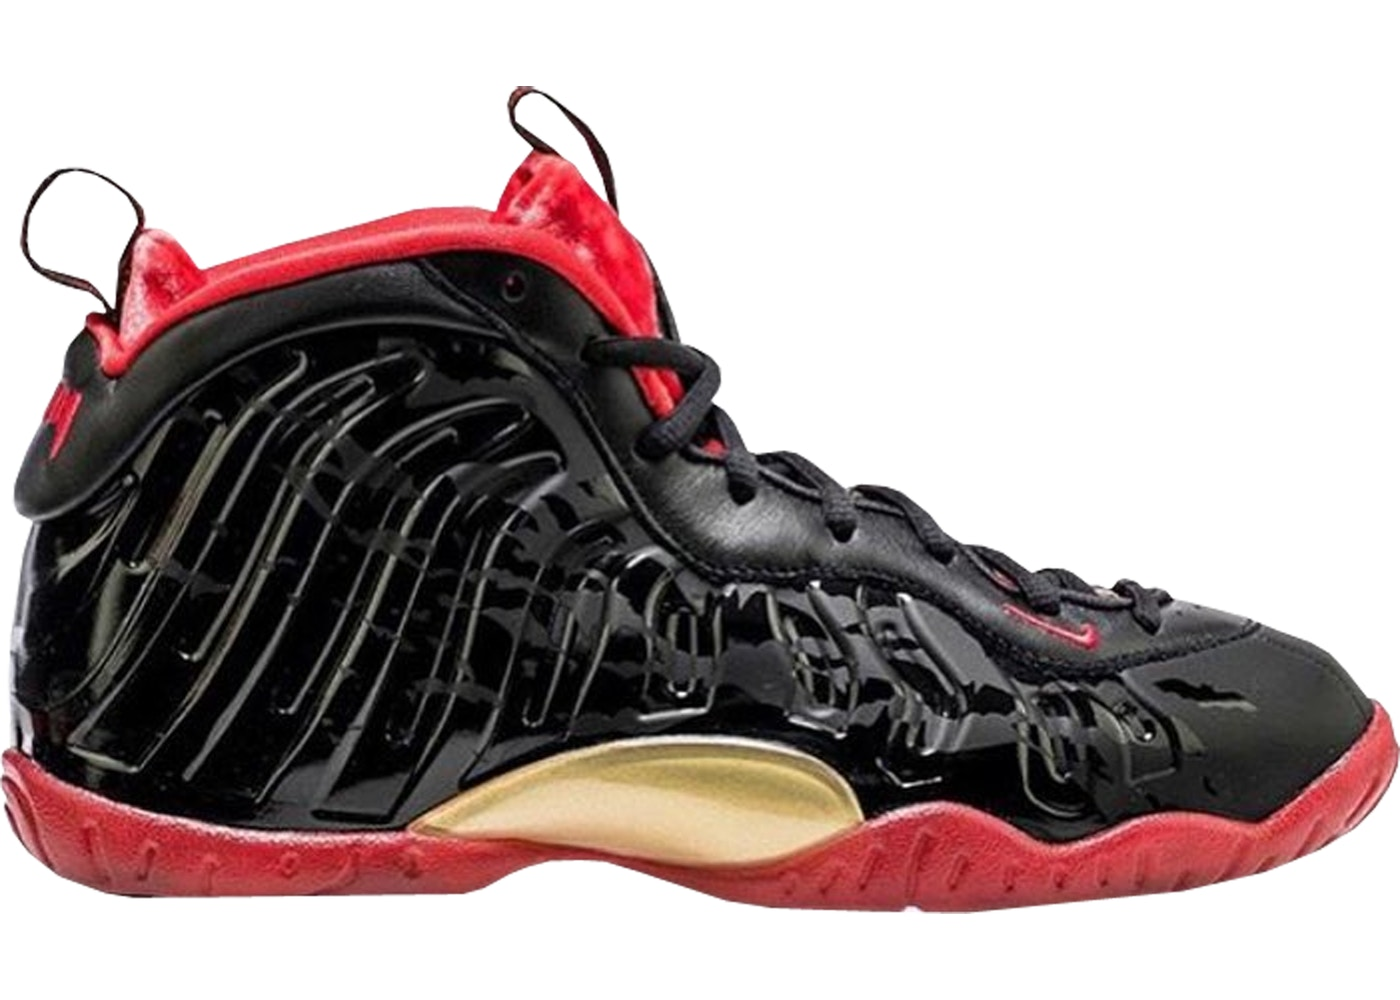 77cbdd3432199 Air Nike Foamposite One Dracula (GS) - 846077-003